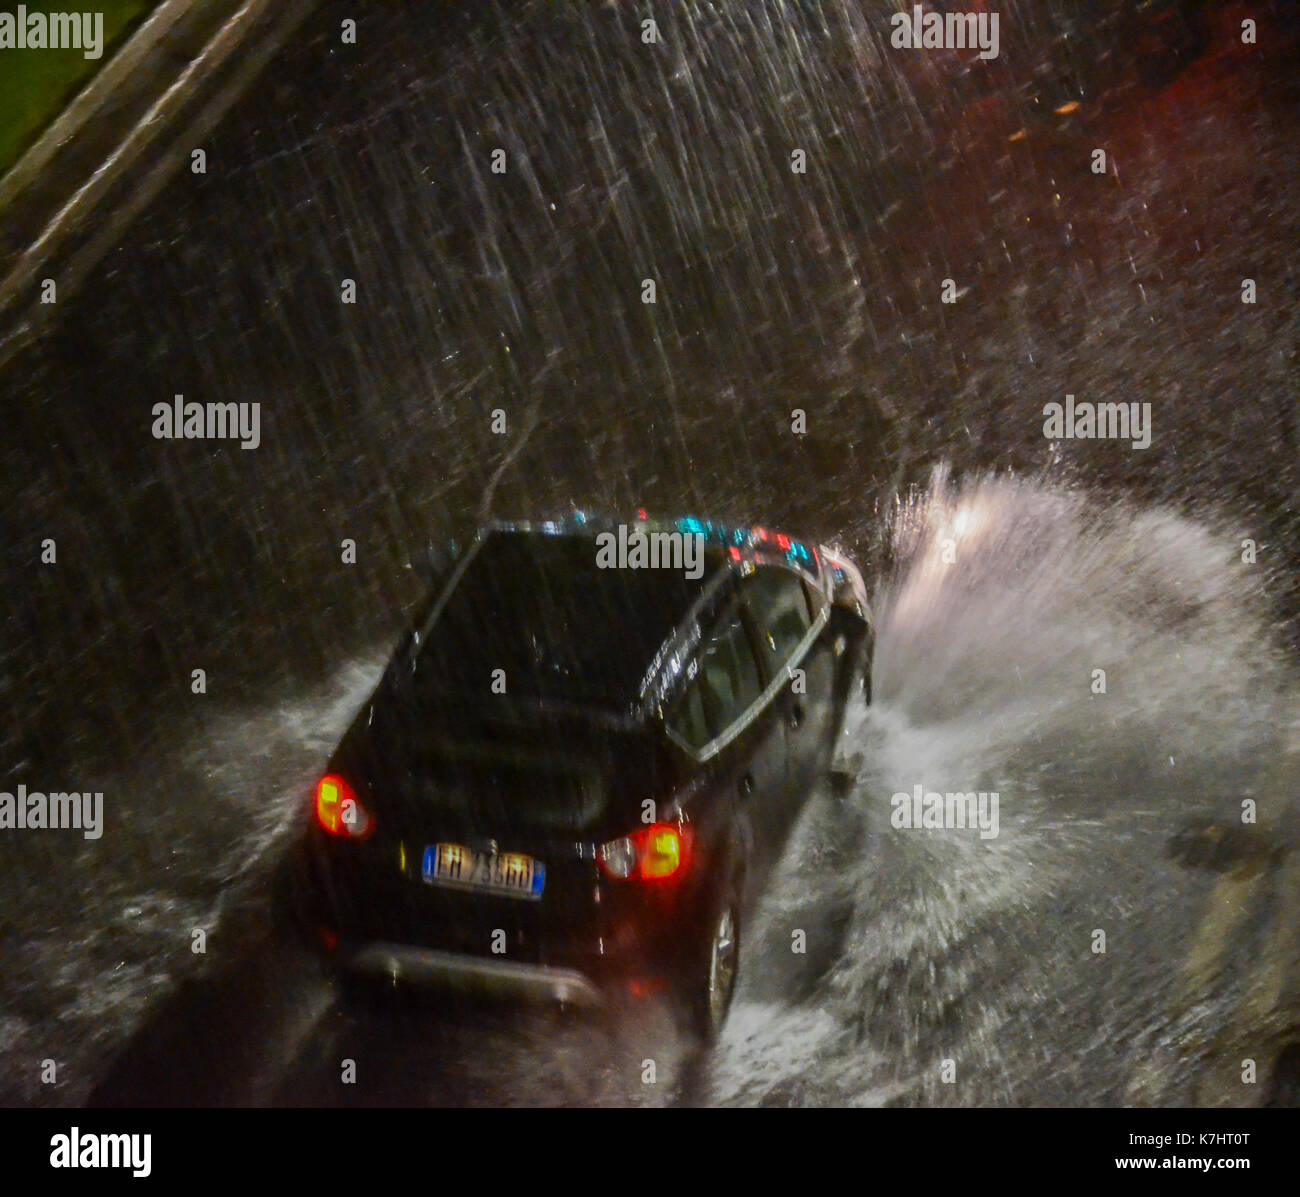 Torrential rain in a street in Milan, Italy Stock Photo